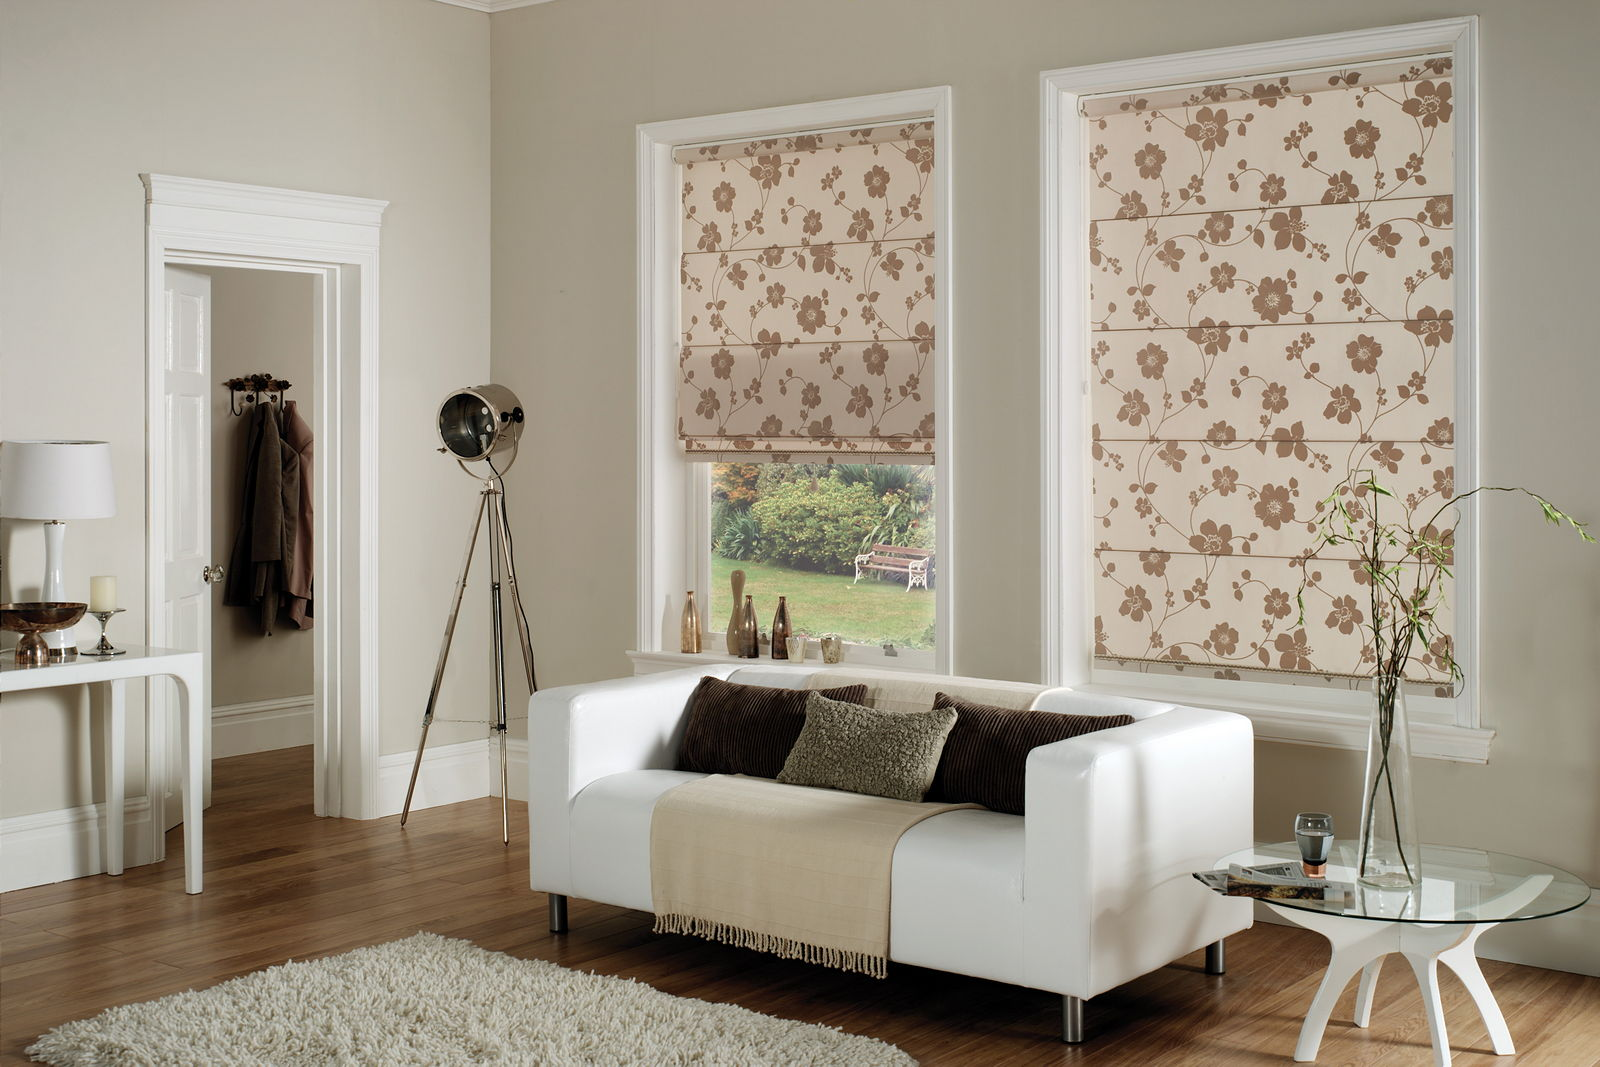 Wohnzimmervorhänge Living Room Curtains: The Best Photos Of Curtains` Design